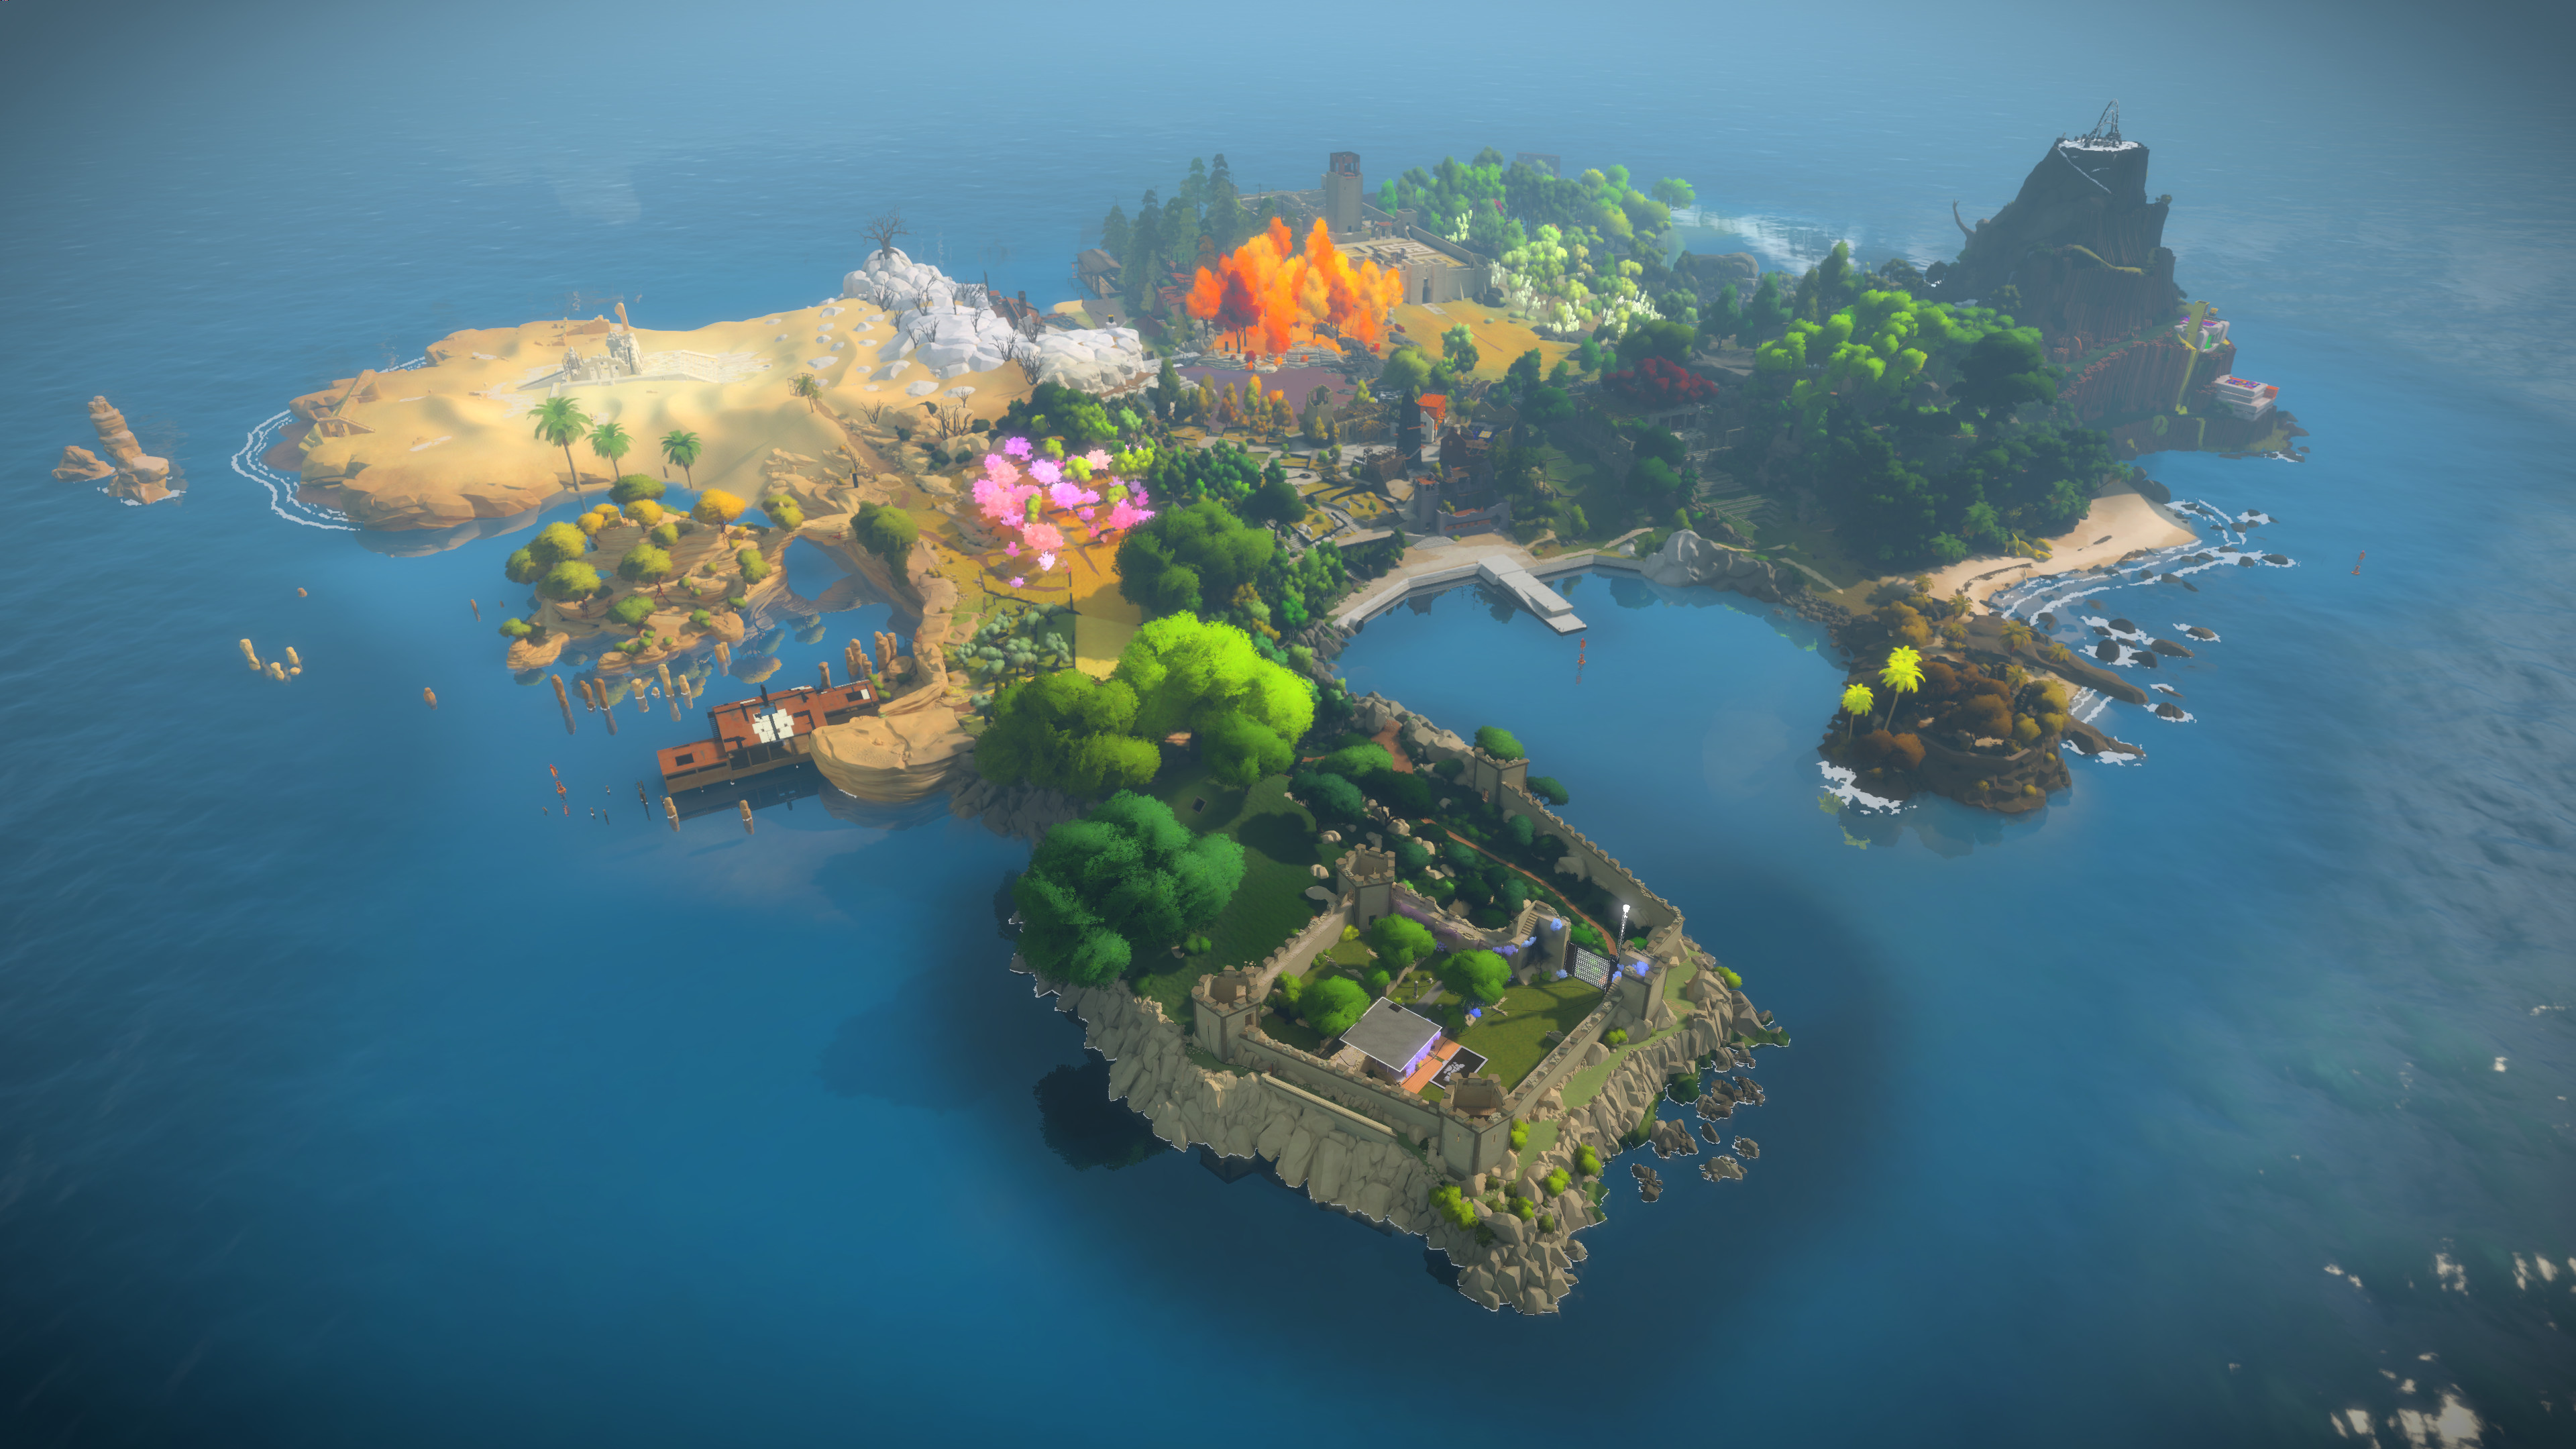 Drawn islet pc games Best  puzzle GamesRadar+ games